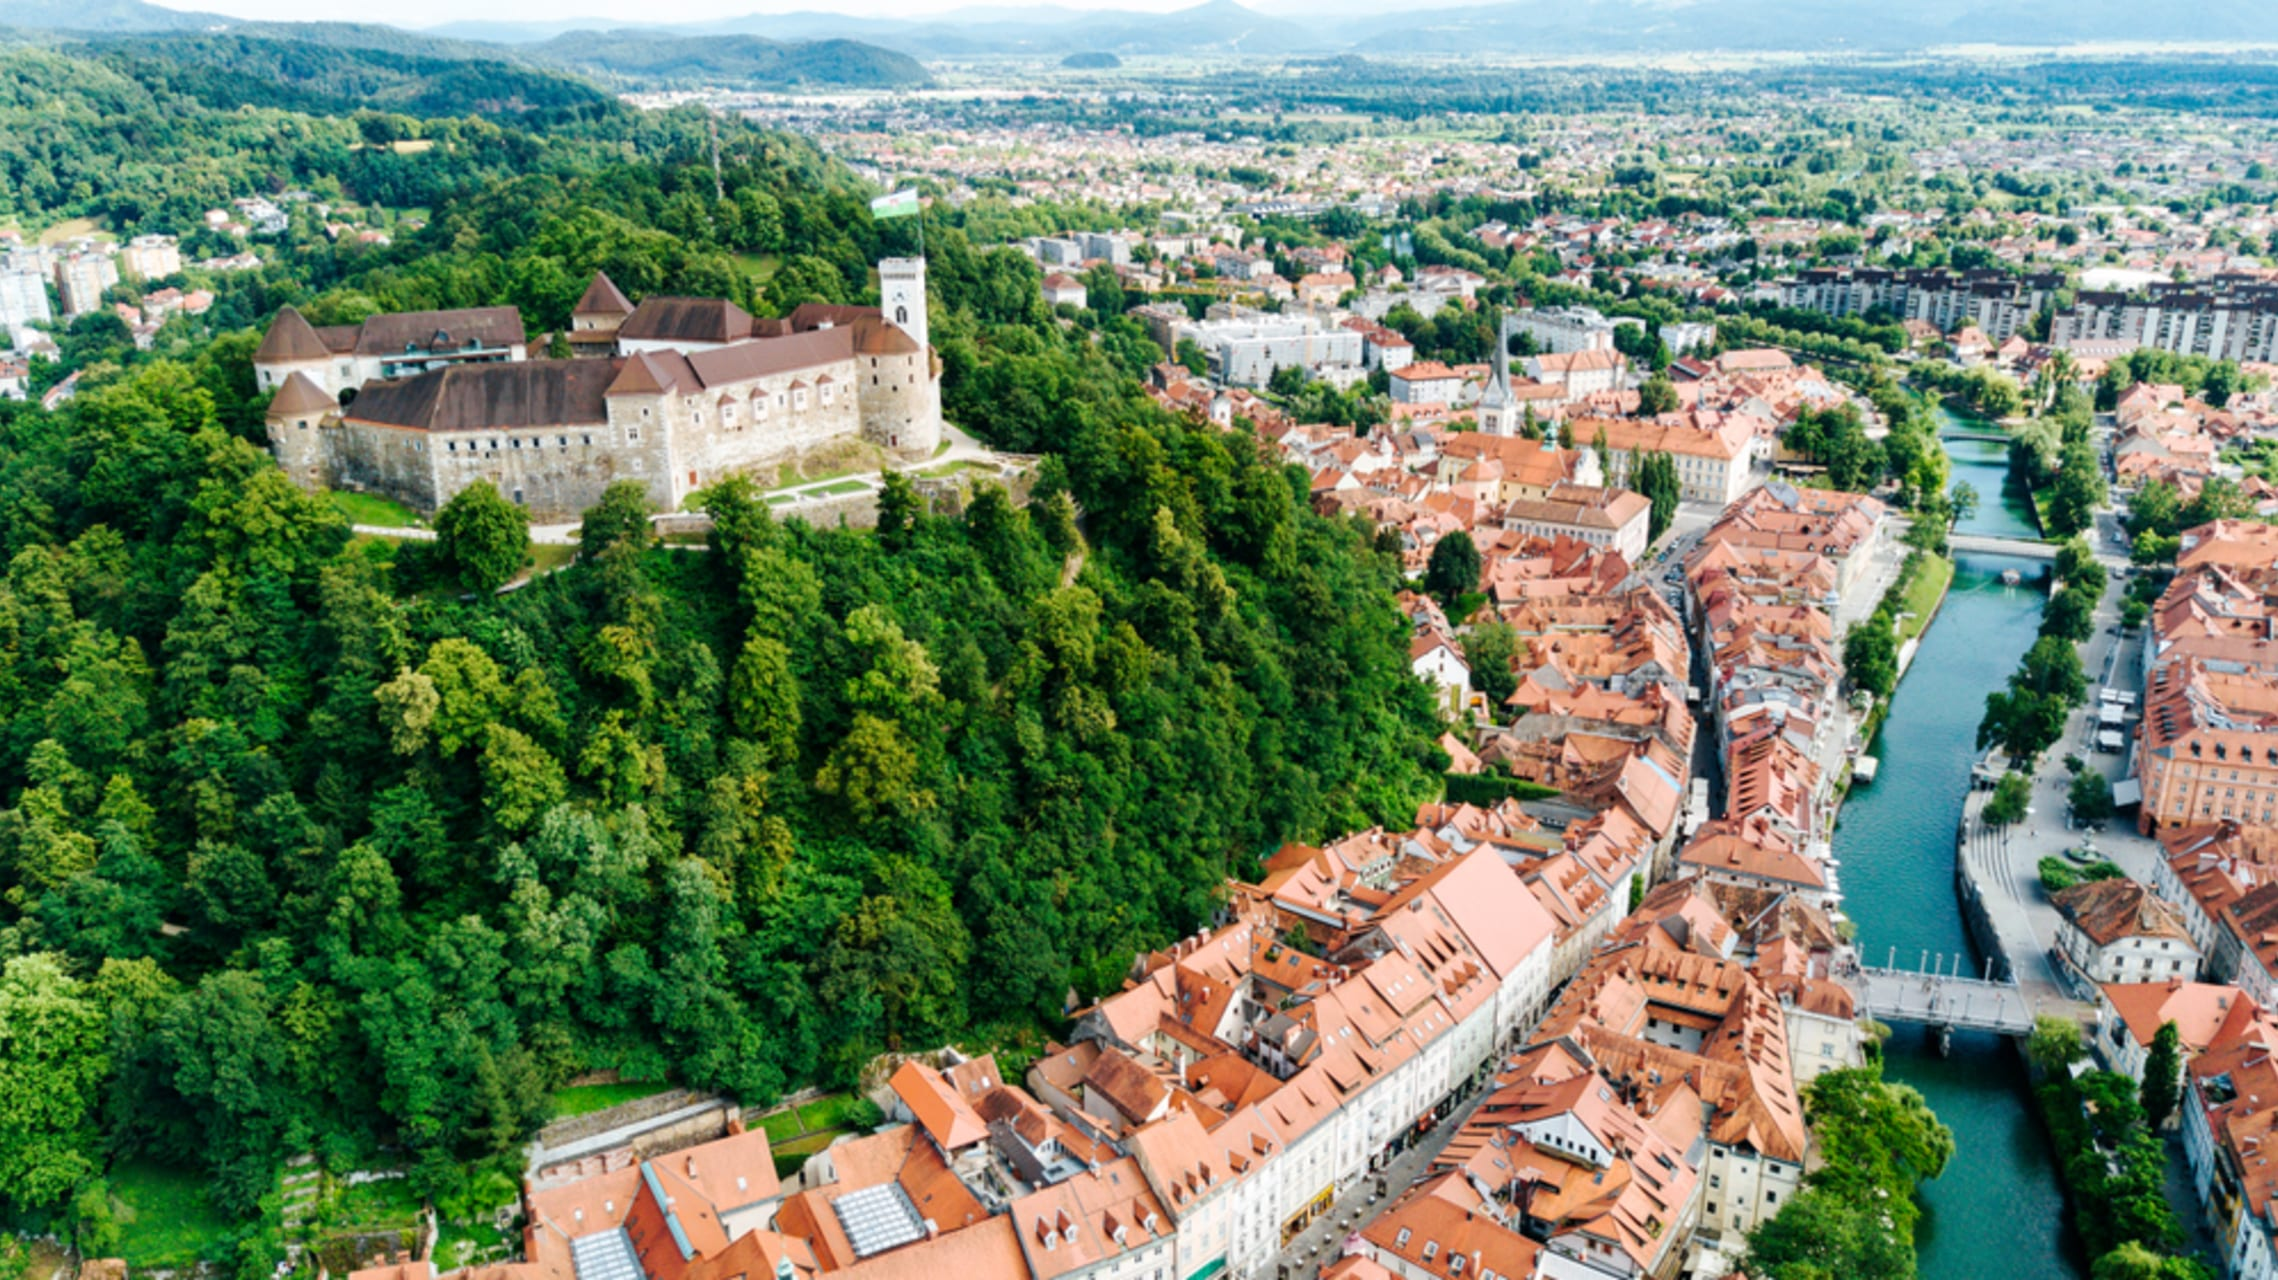 Ljubljana - Slovenia- one of the youngest European countries